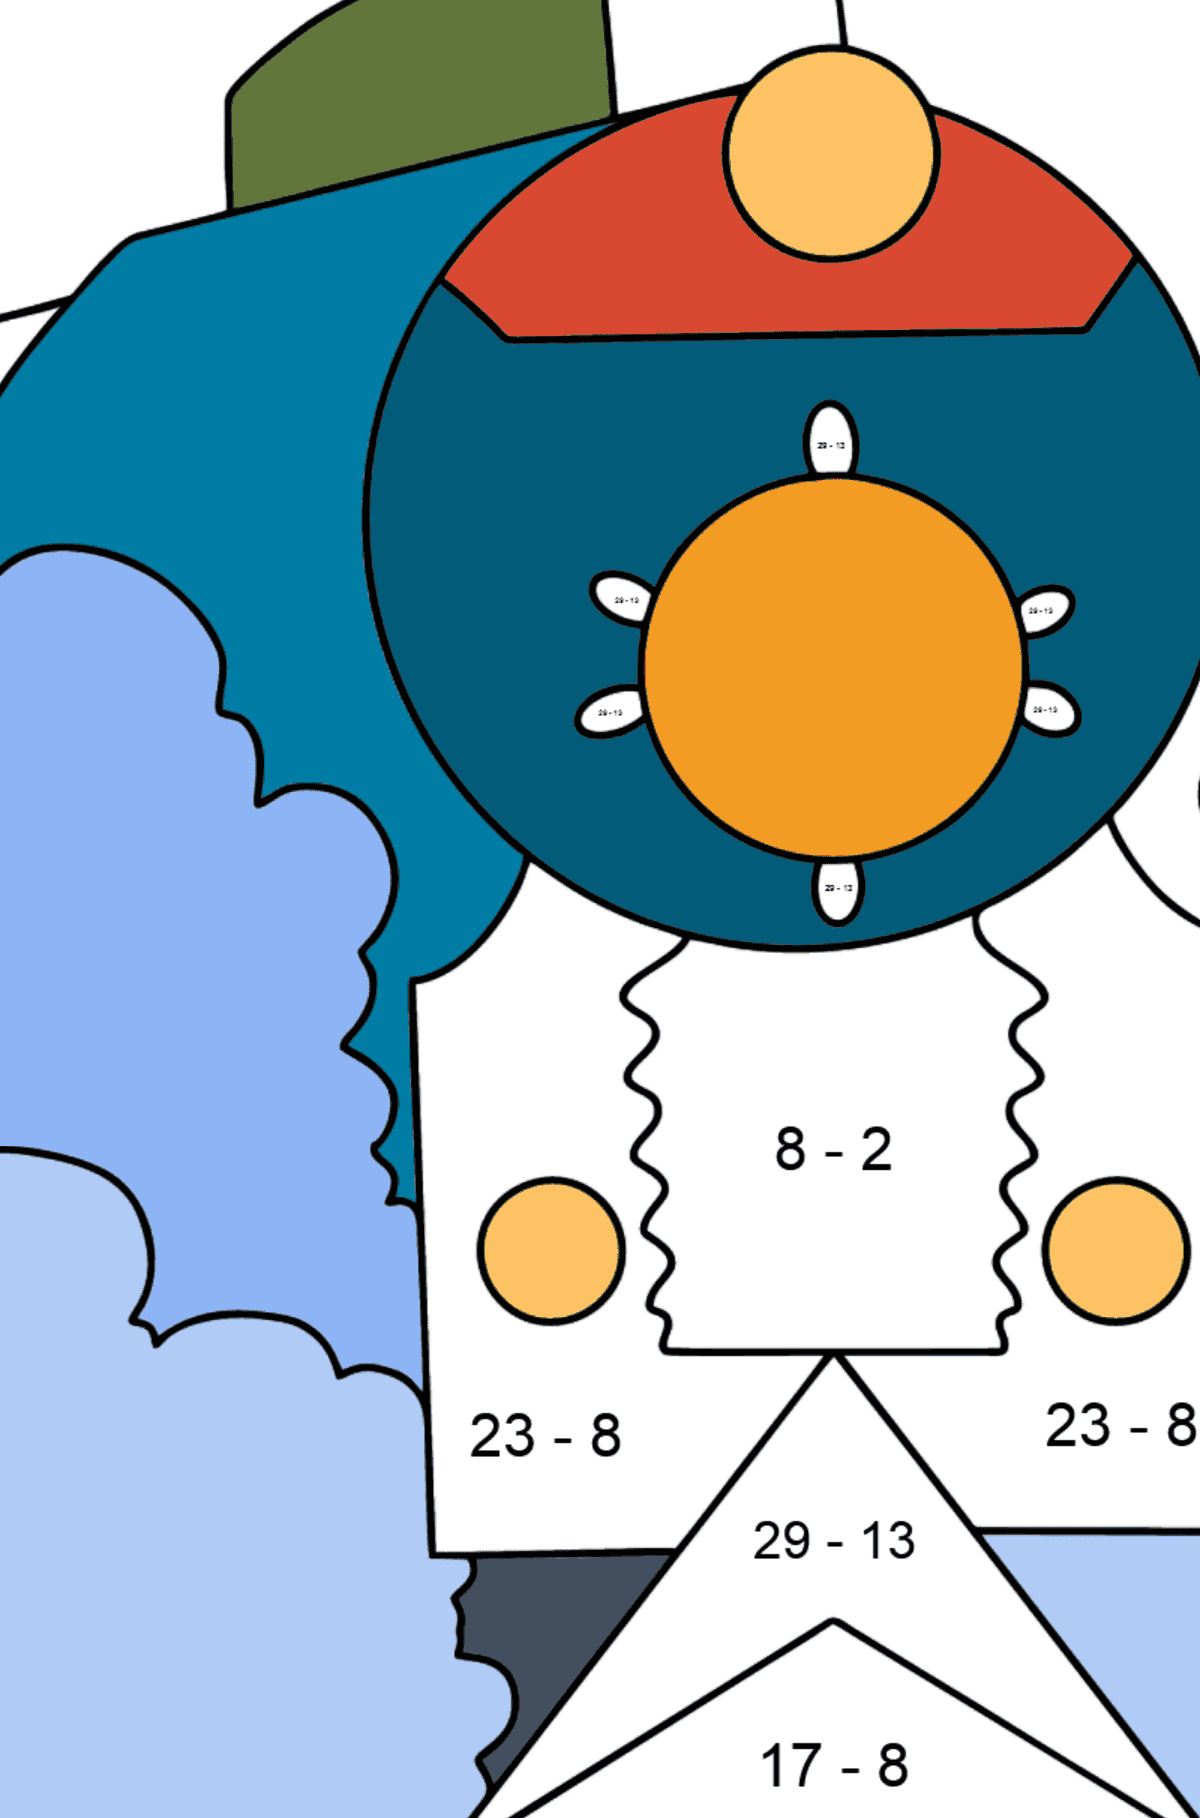 Coloring Page - A Locomotive with Coaches - Math Coloring - Subtraction for Kids